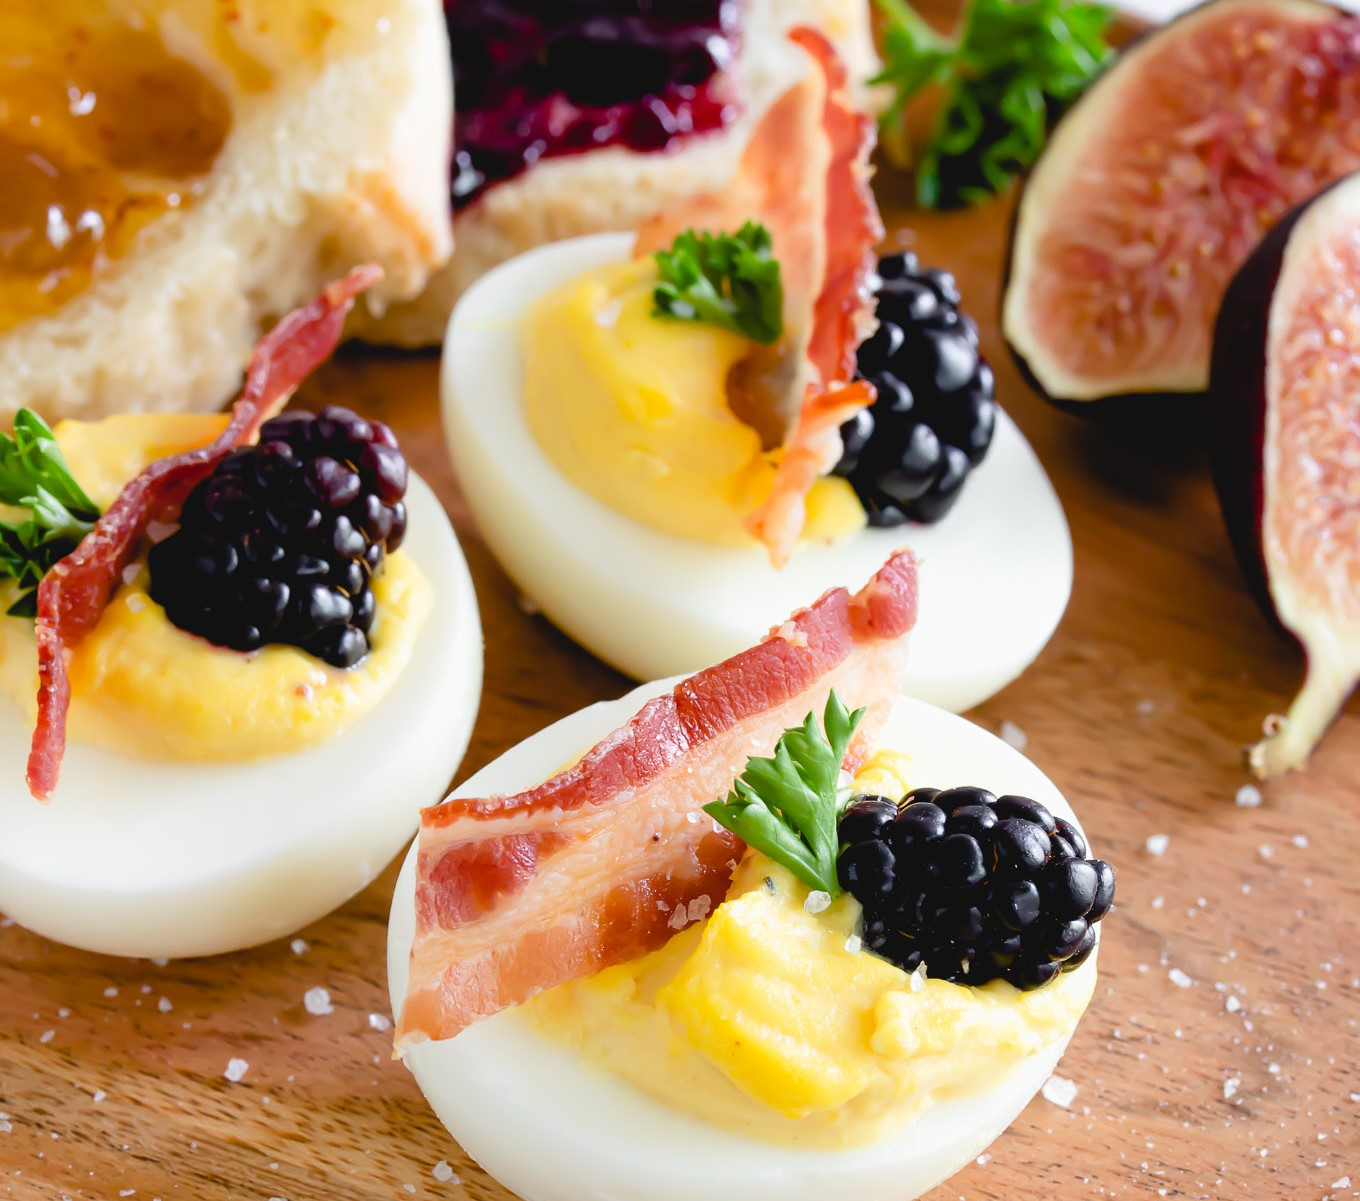 Celebrate Spring with Deviled Eggs